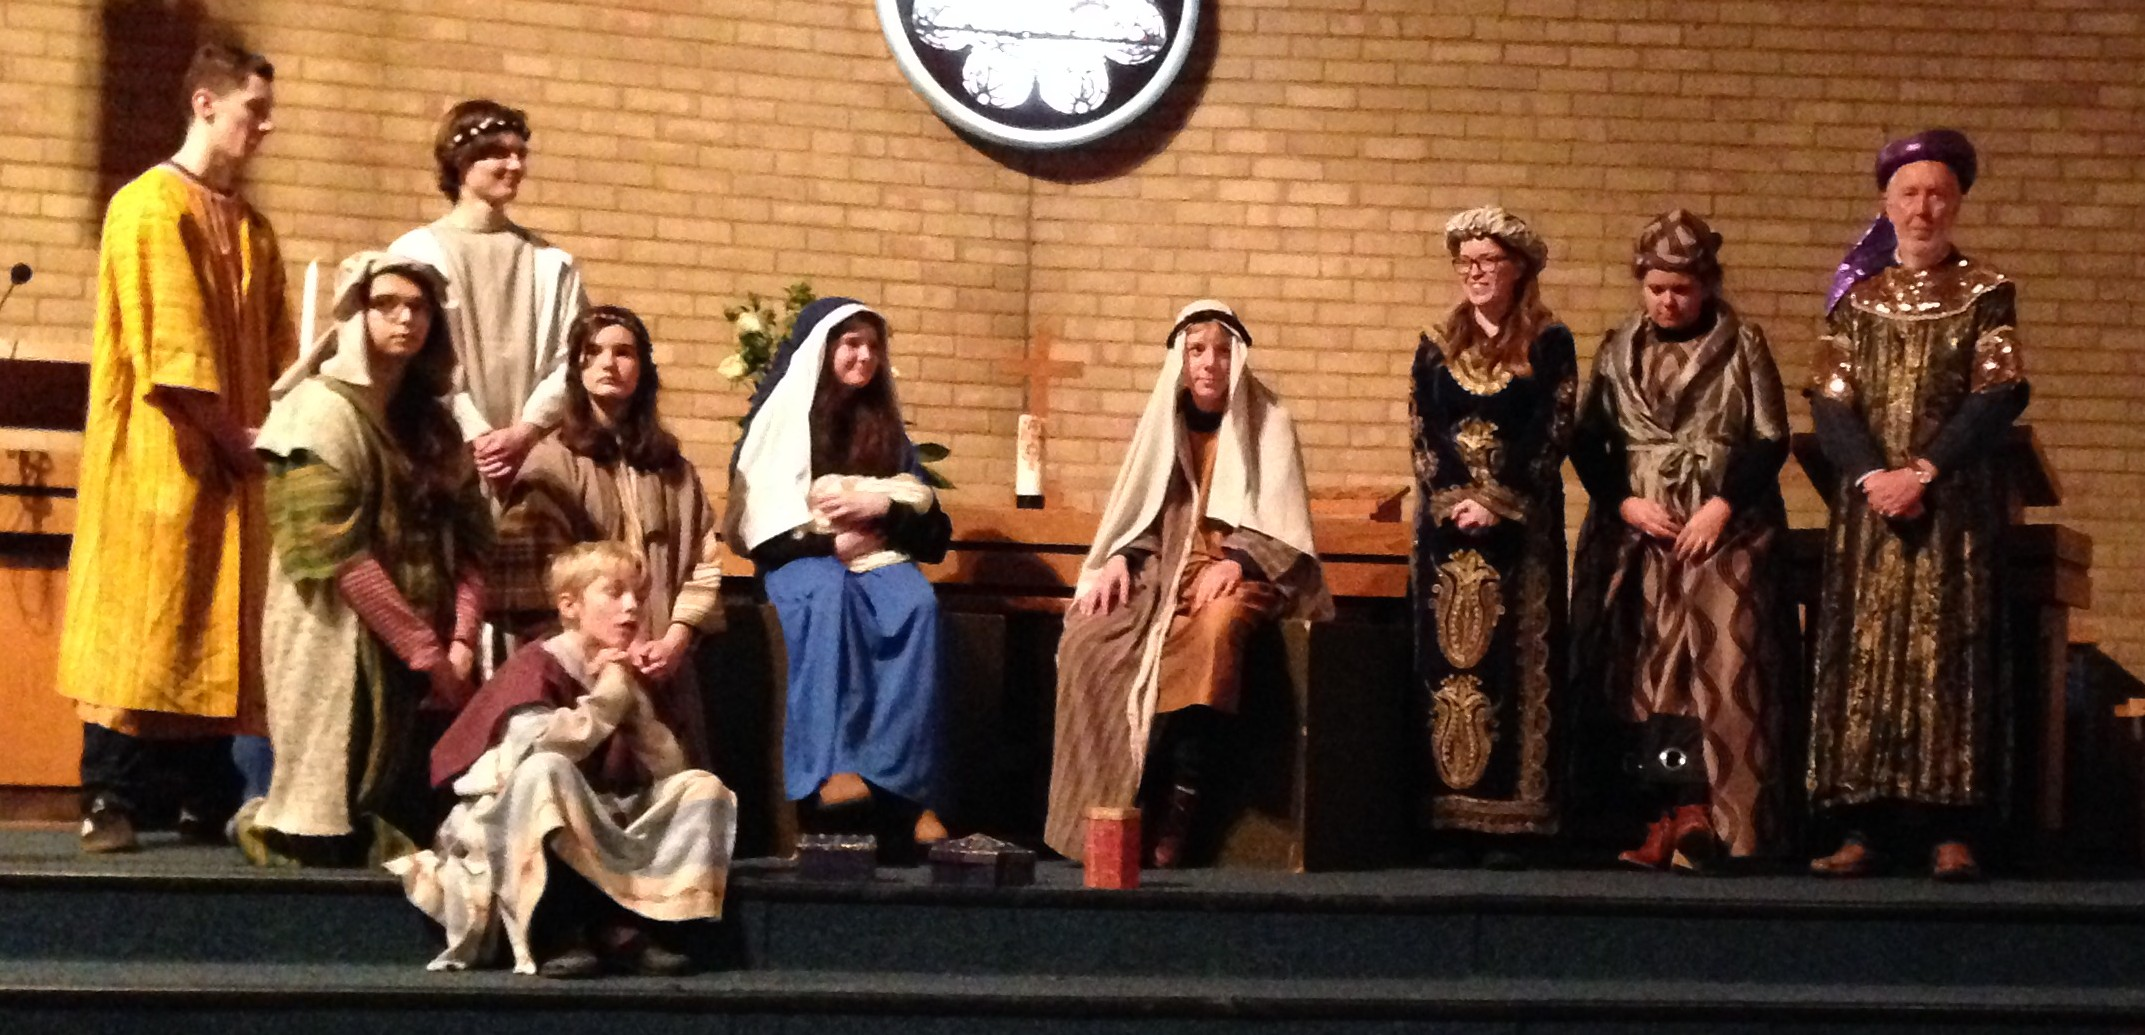 Adults and yougsters dressed up for Nativity at MHMC